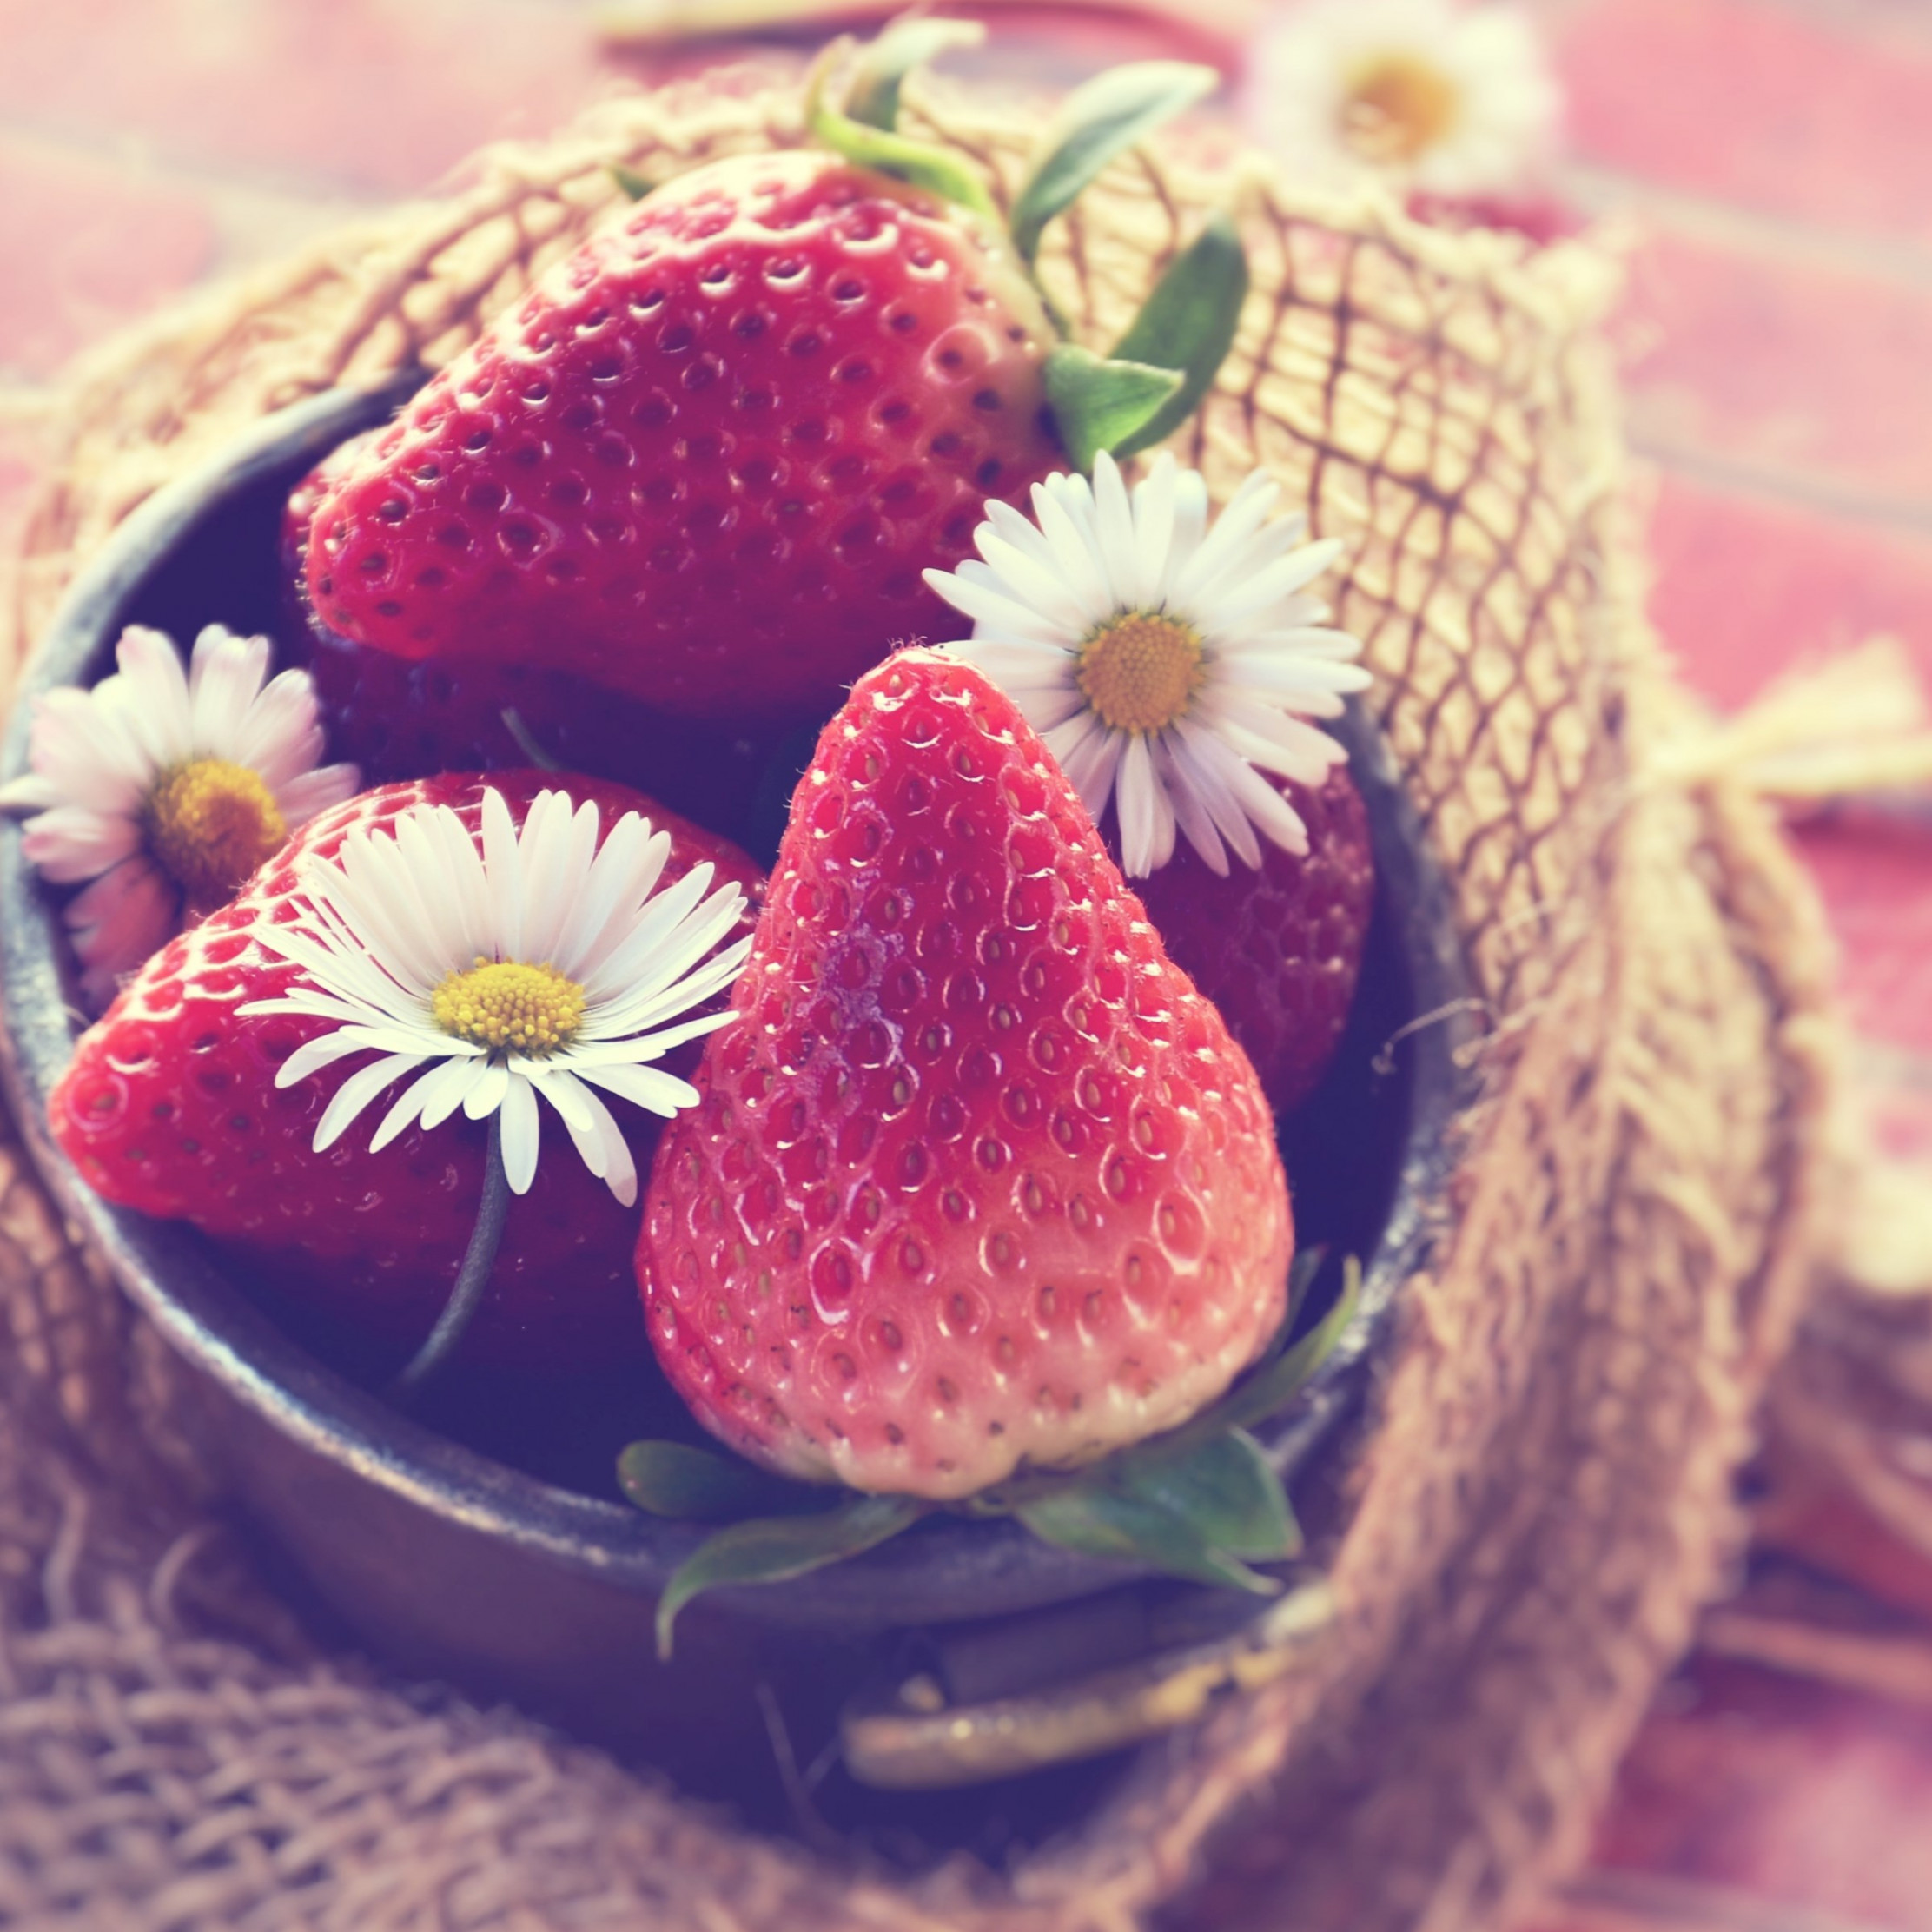 Tasty strawberries wallpaper 2224x2224